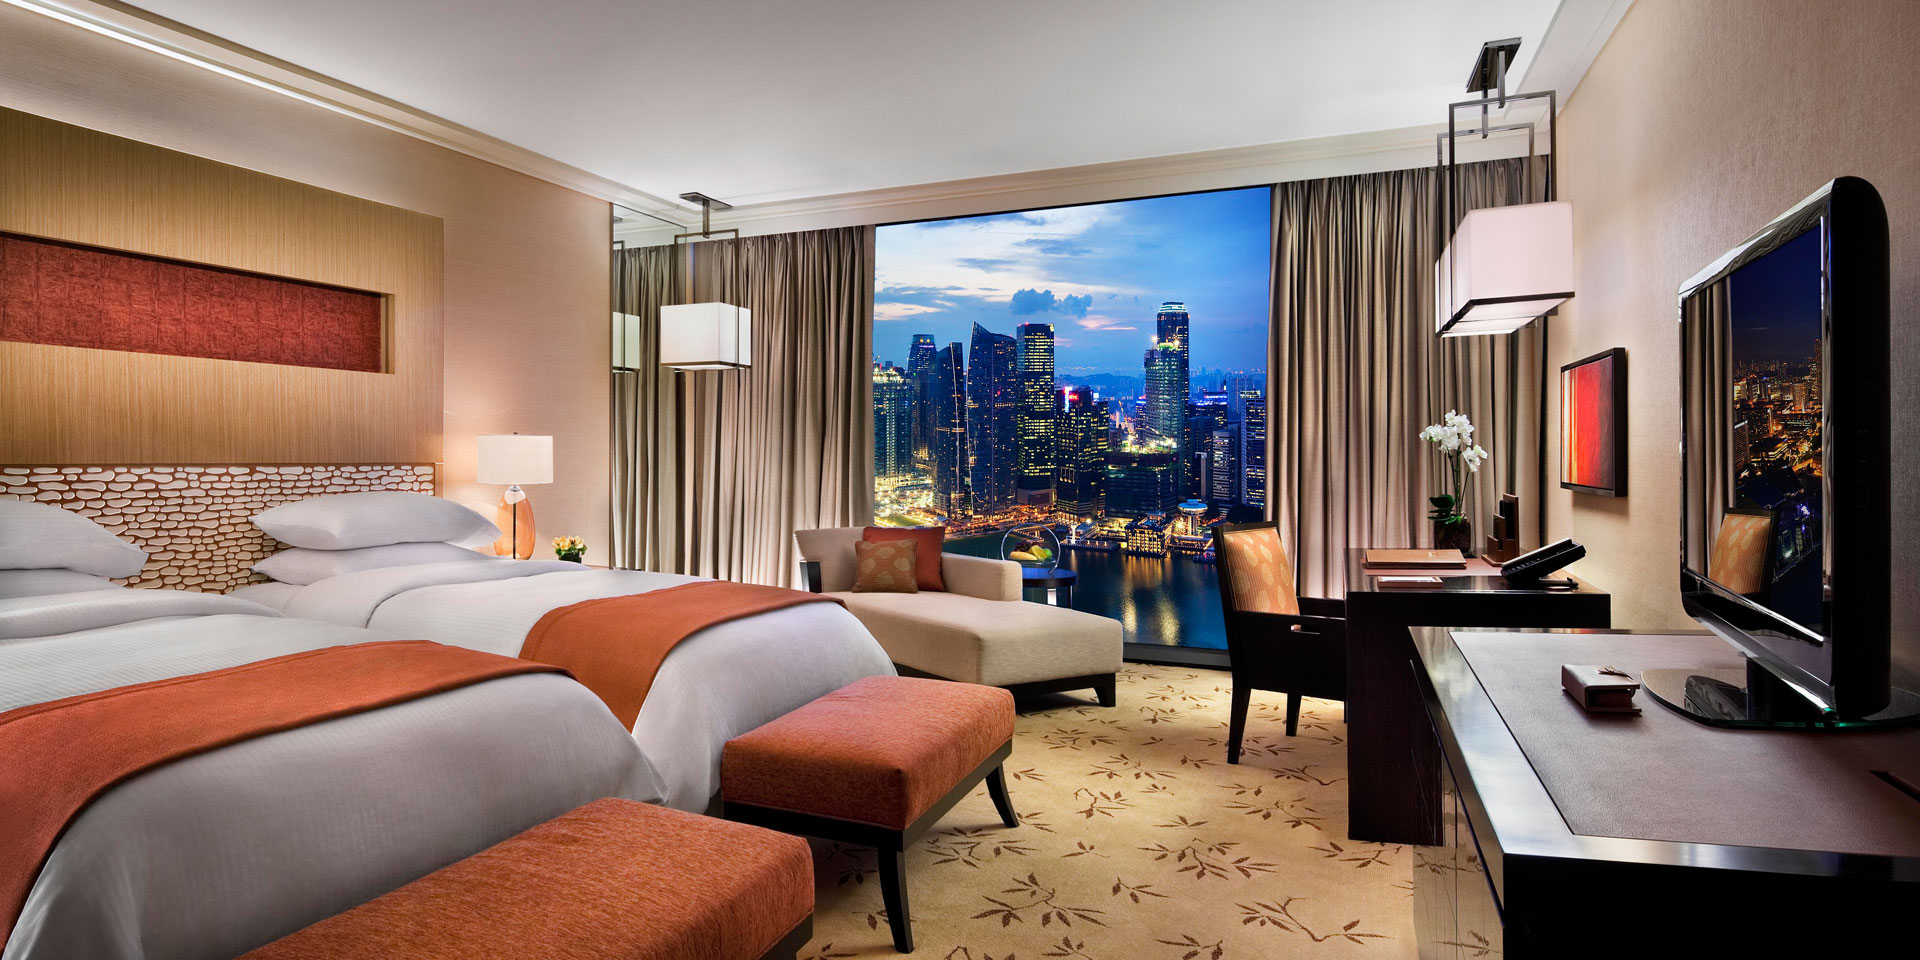 Deluxe Room at Marina Bay Sands with Twin Beds and City View